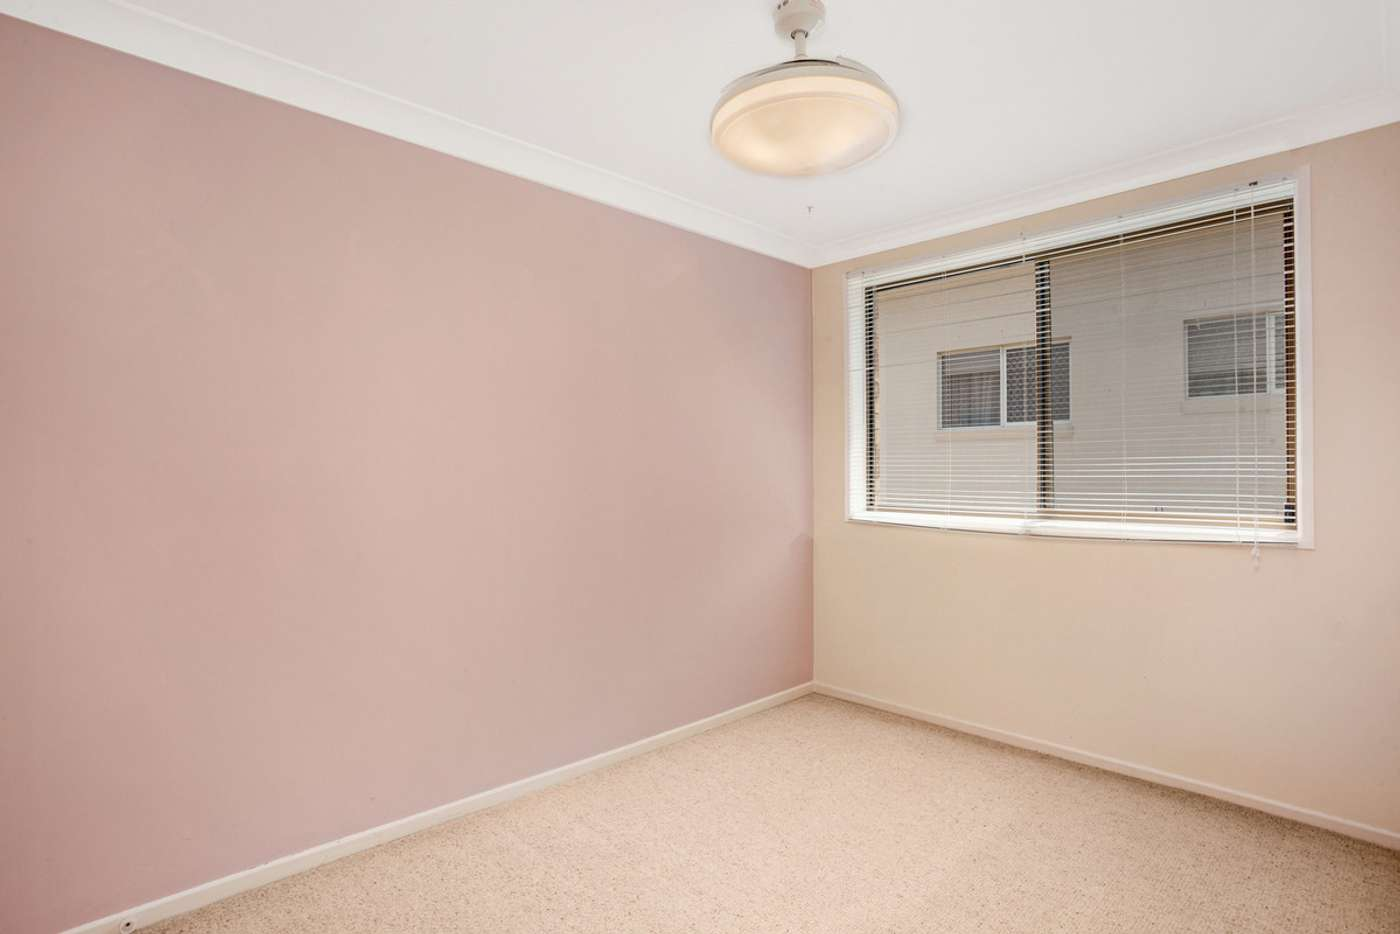 Seventh view of Homely unit listing, 7/20 Burleigh Street, Burleigh Heads QLD 4220